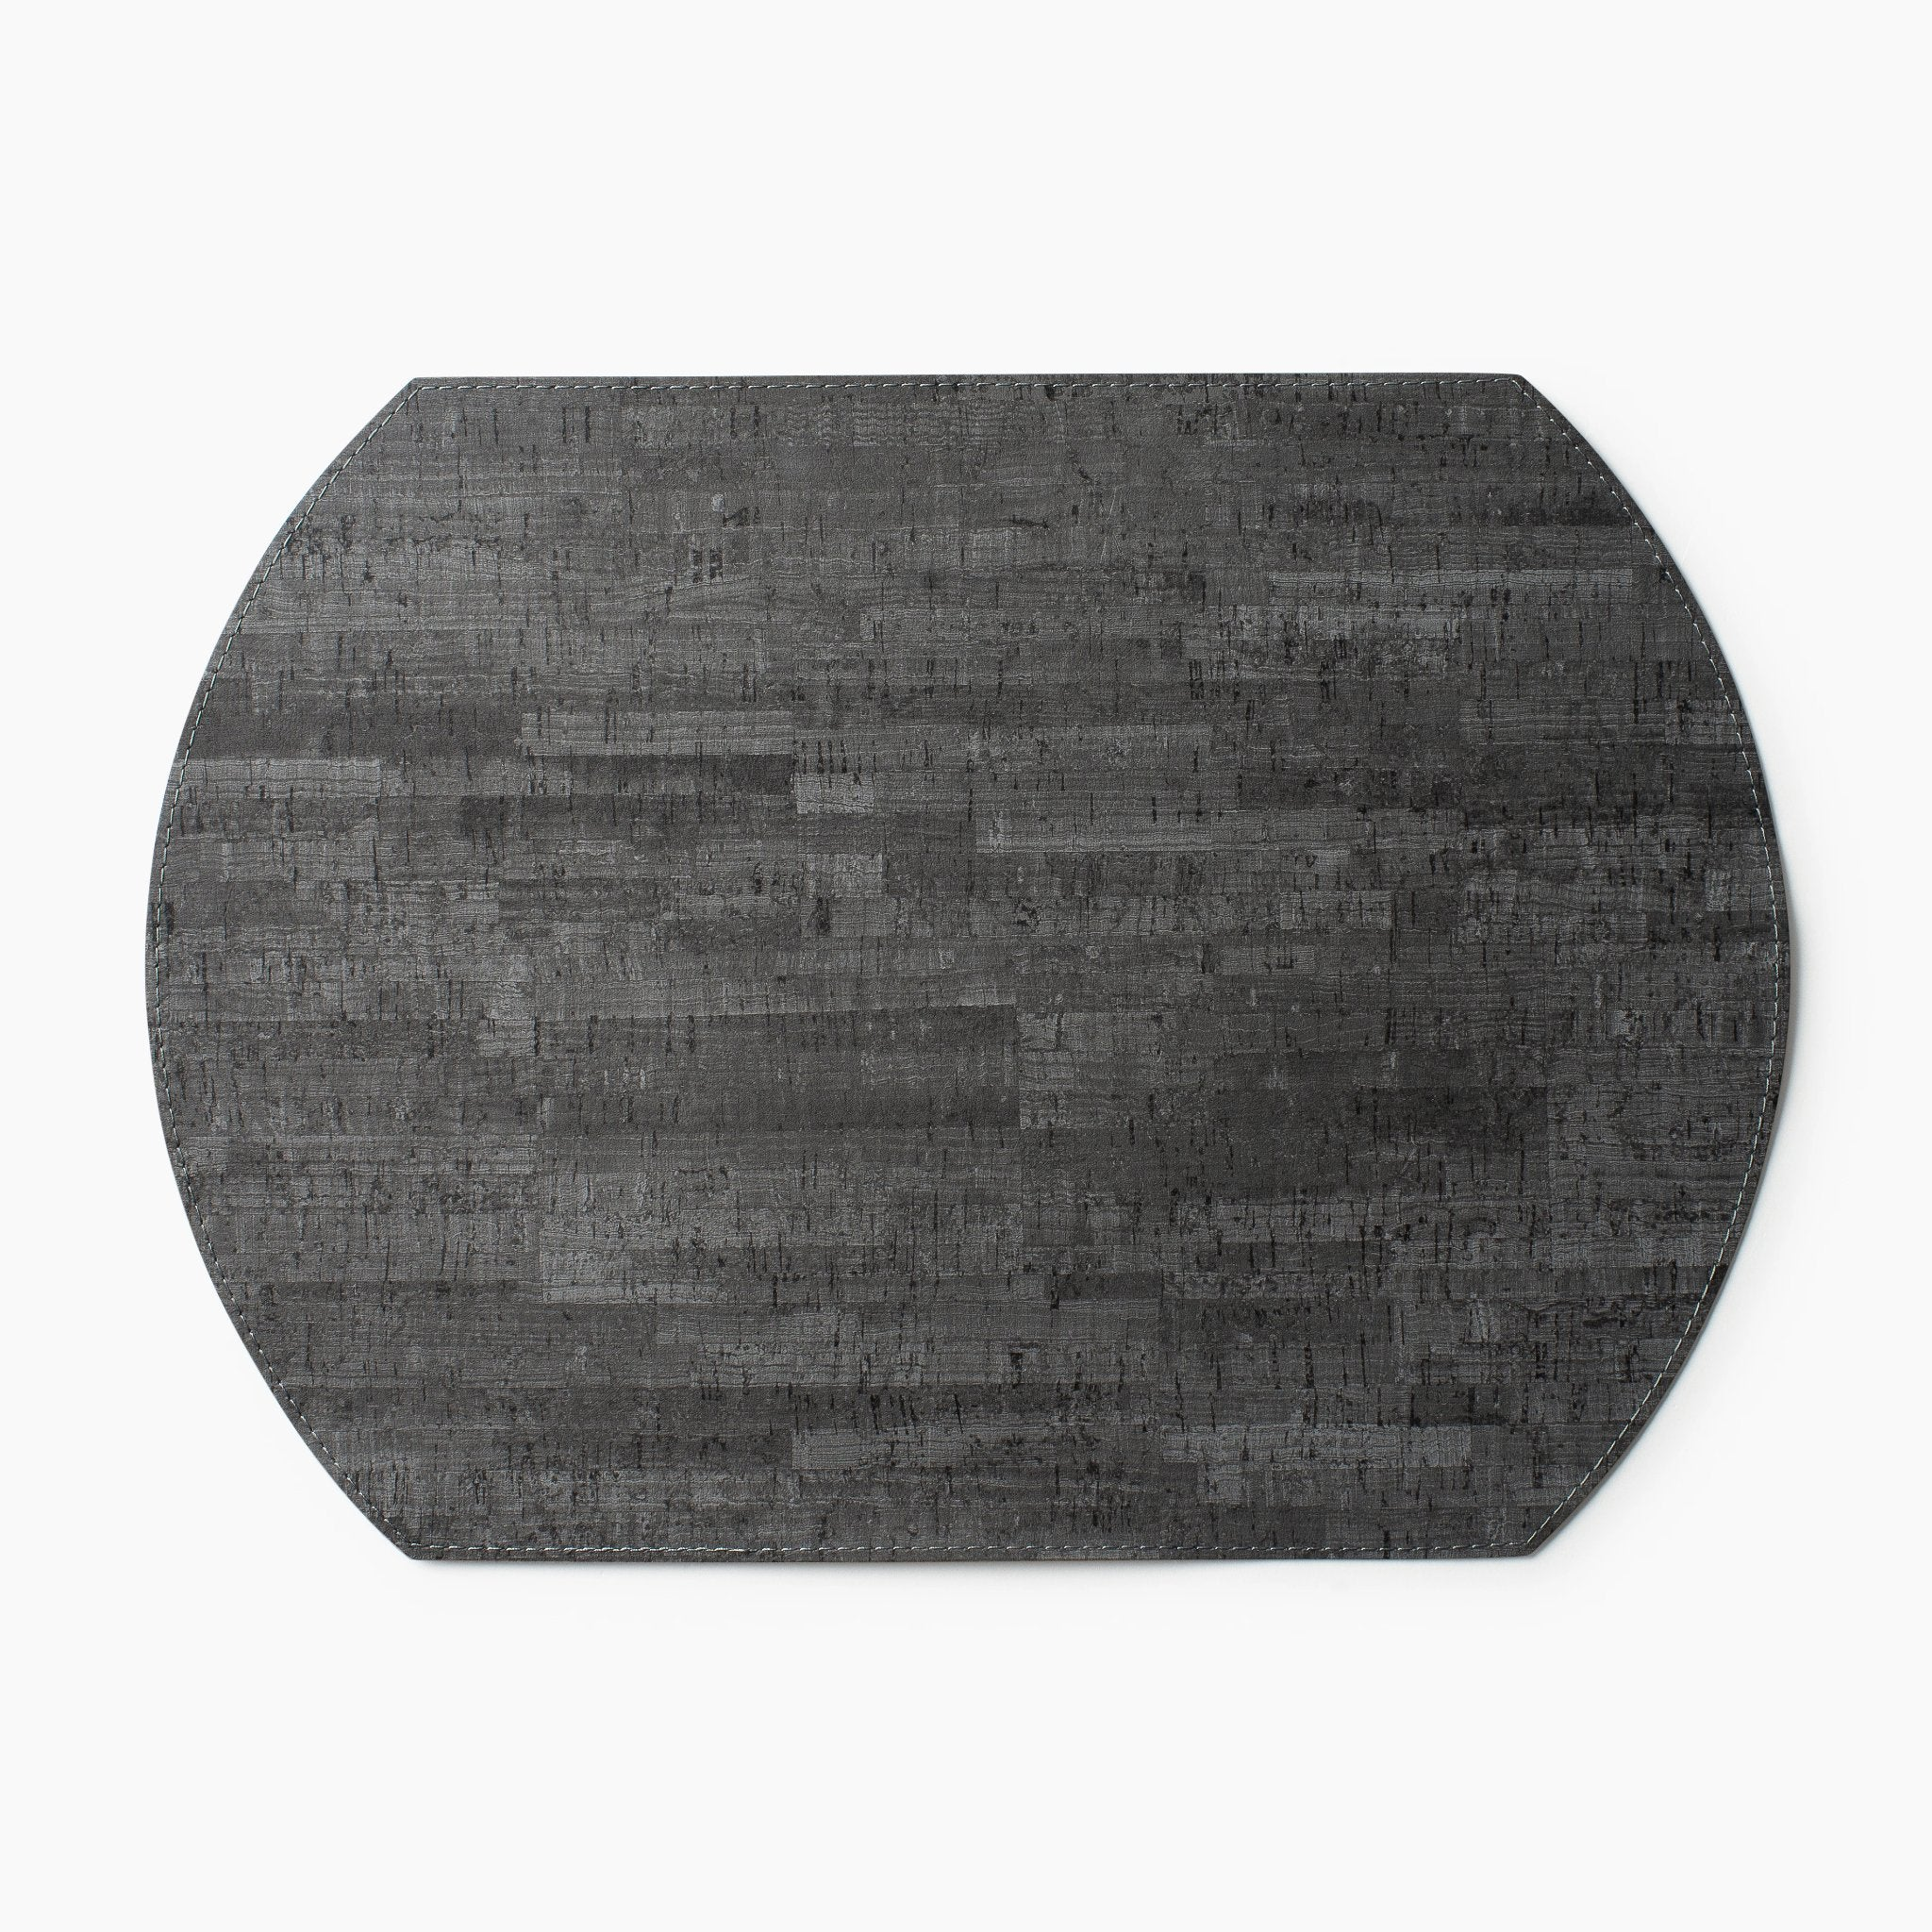 Mink and Charcoal Vinyl Oval Placemat S/6